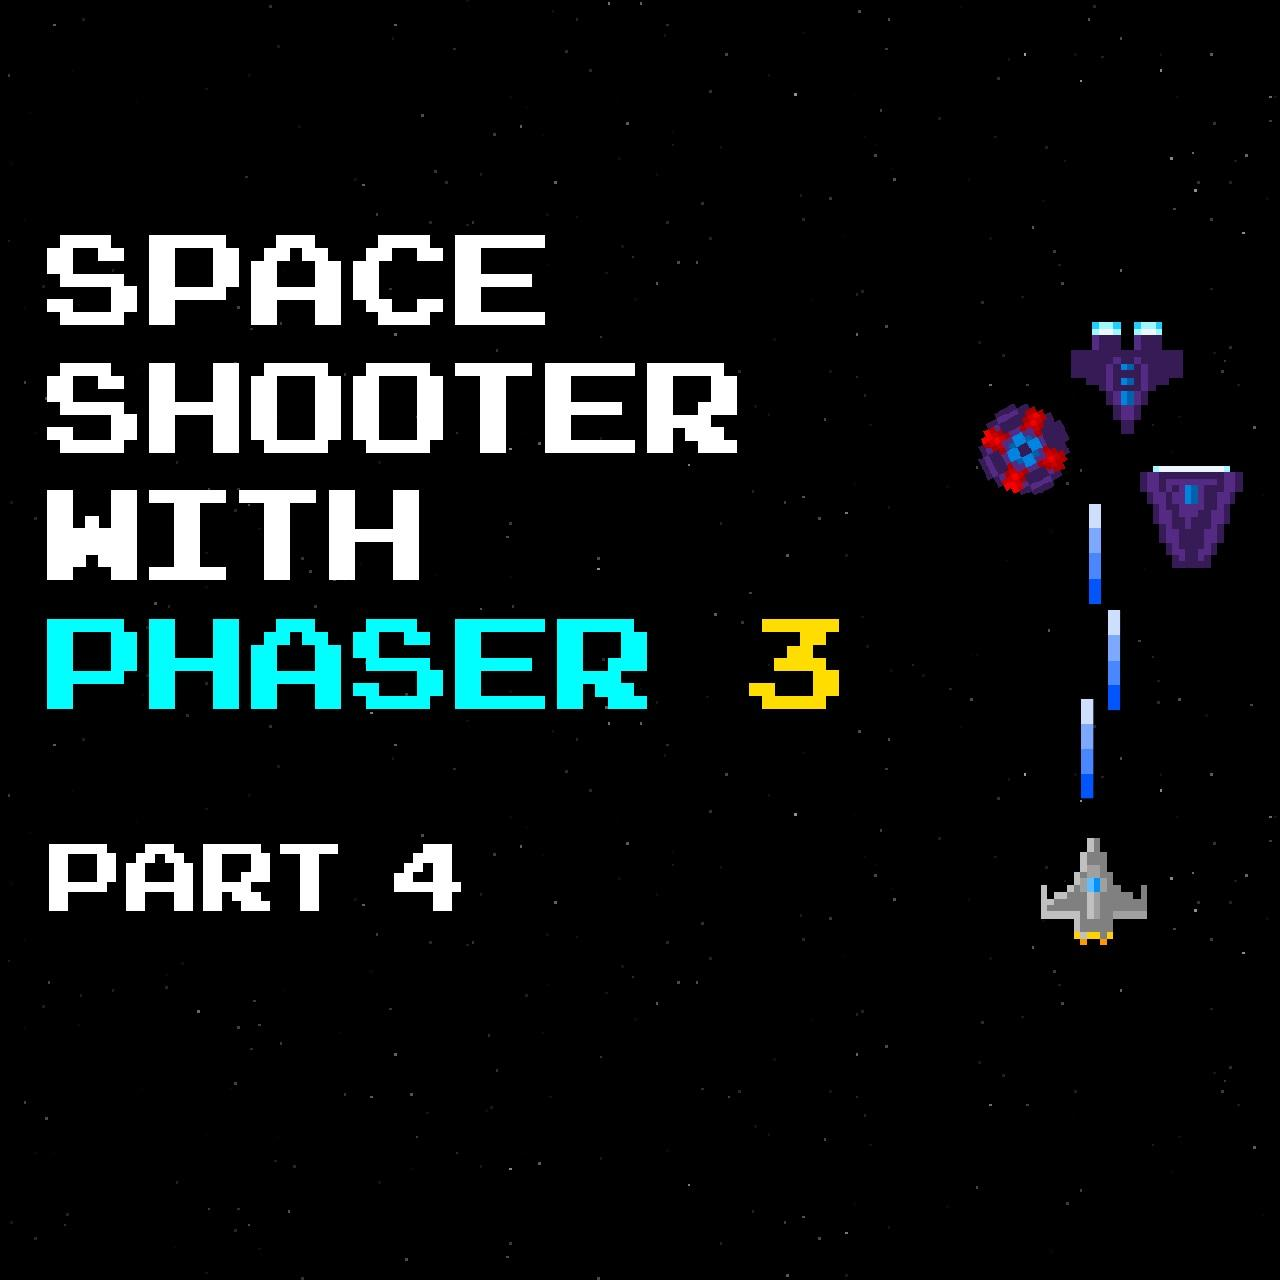 Build a Space Shooter with Phaser 3 – 4